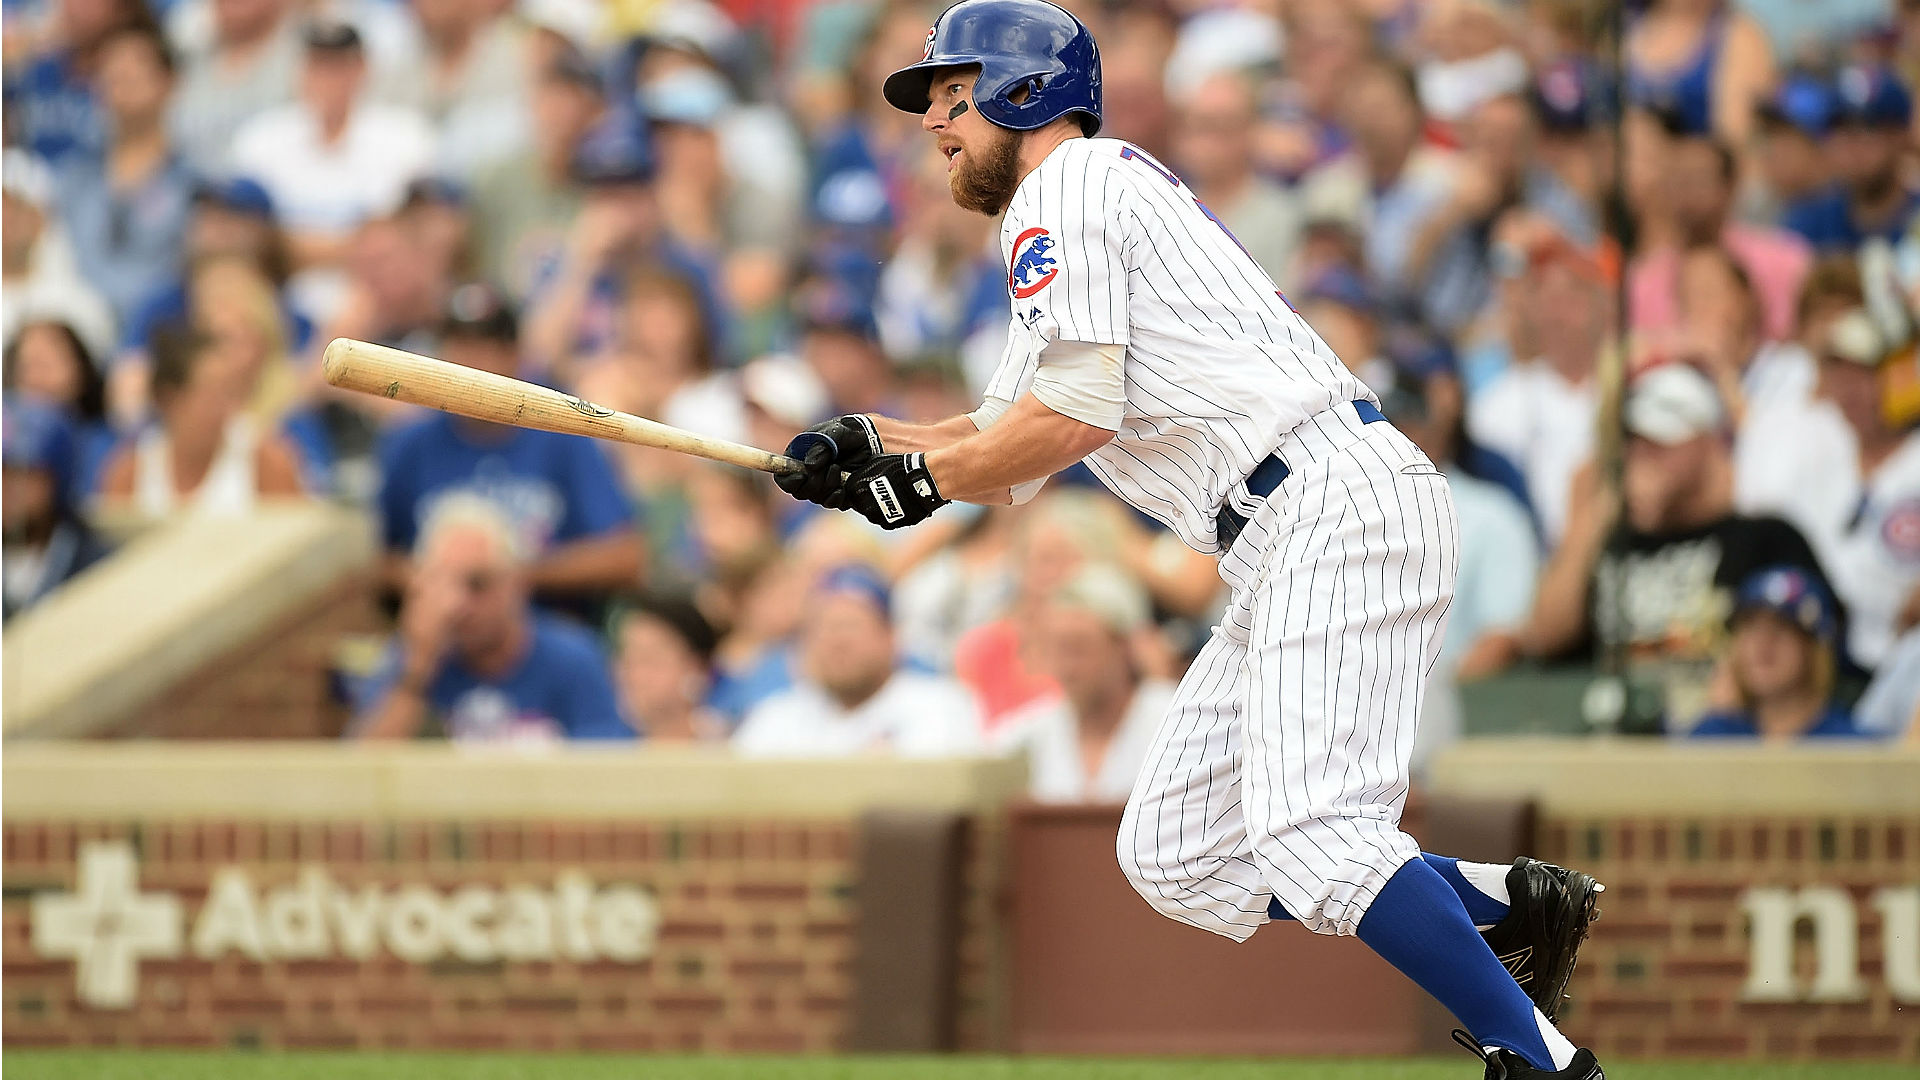 MLB Threatens To Fine Cubs' Ben Zobrist Over Wearing Black Cleats